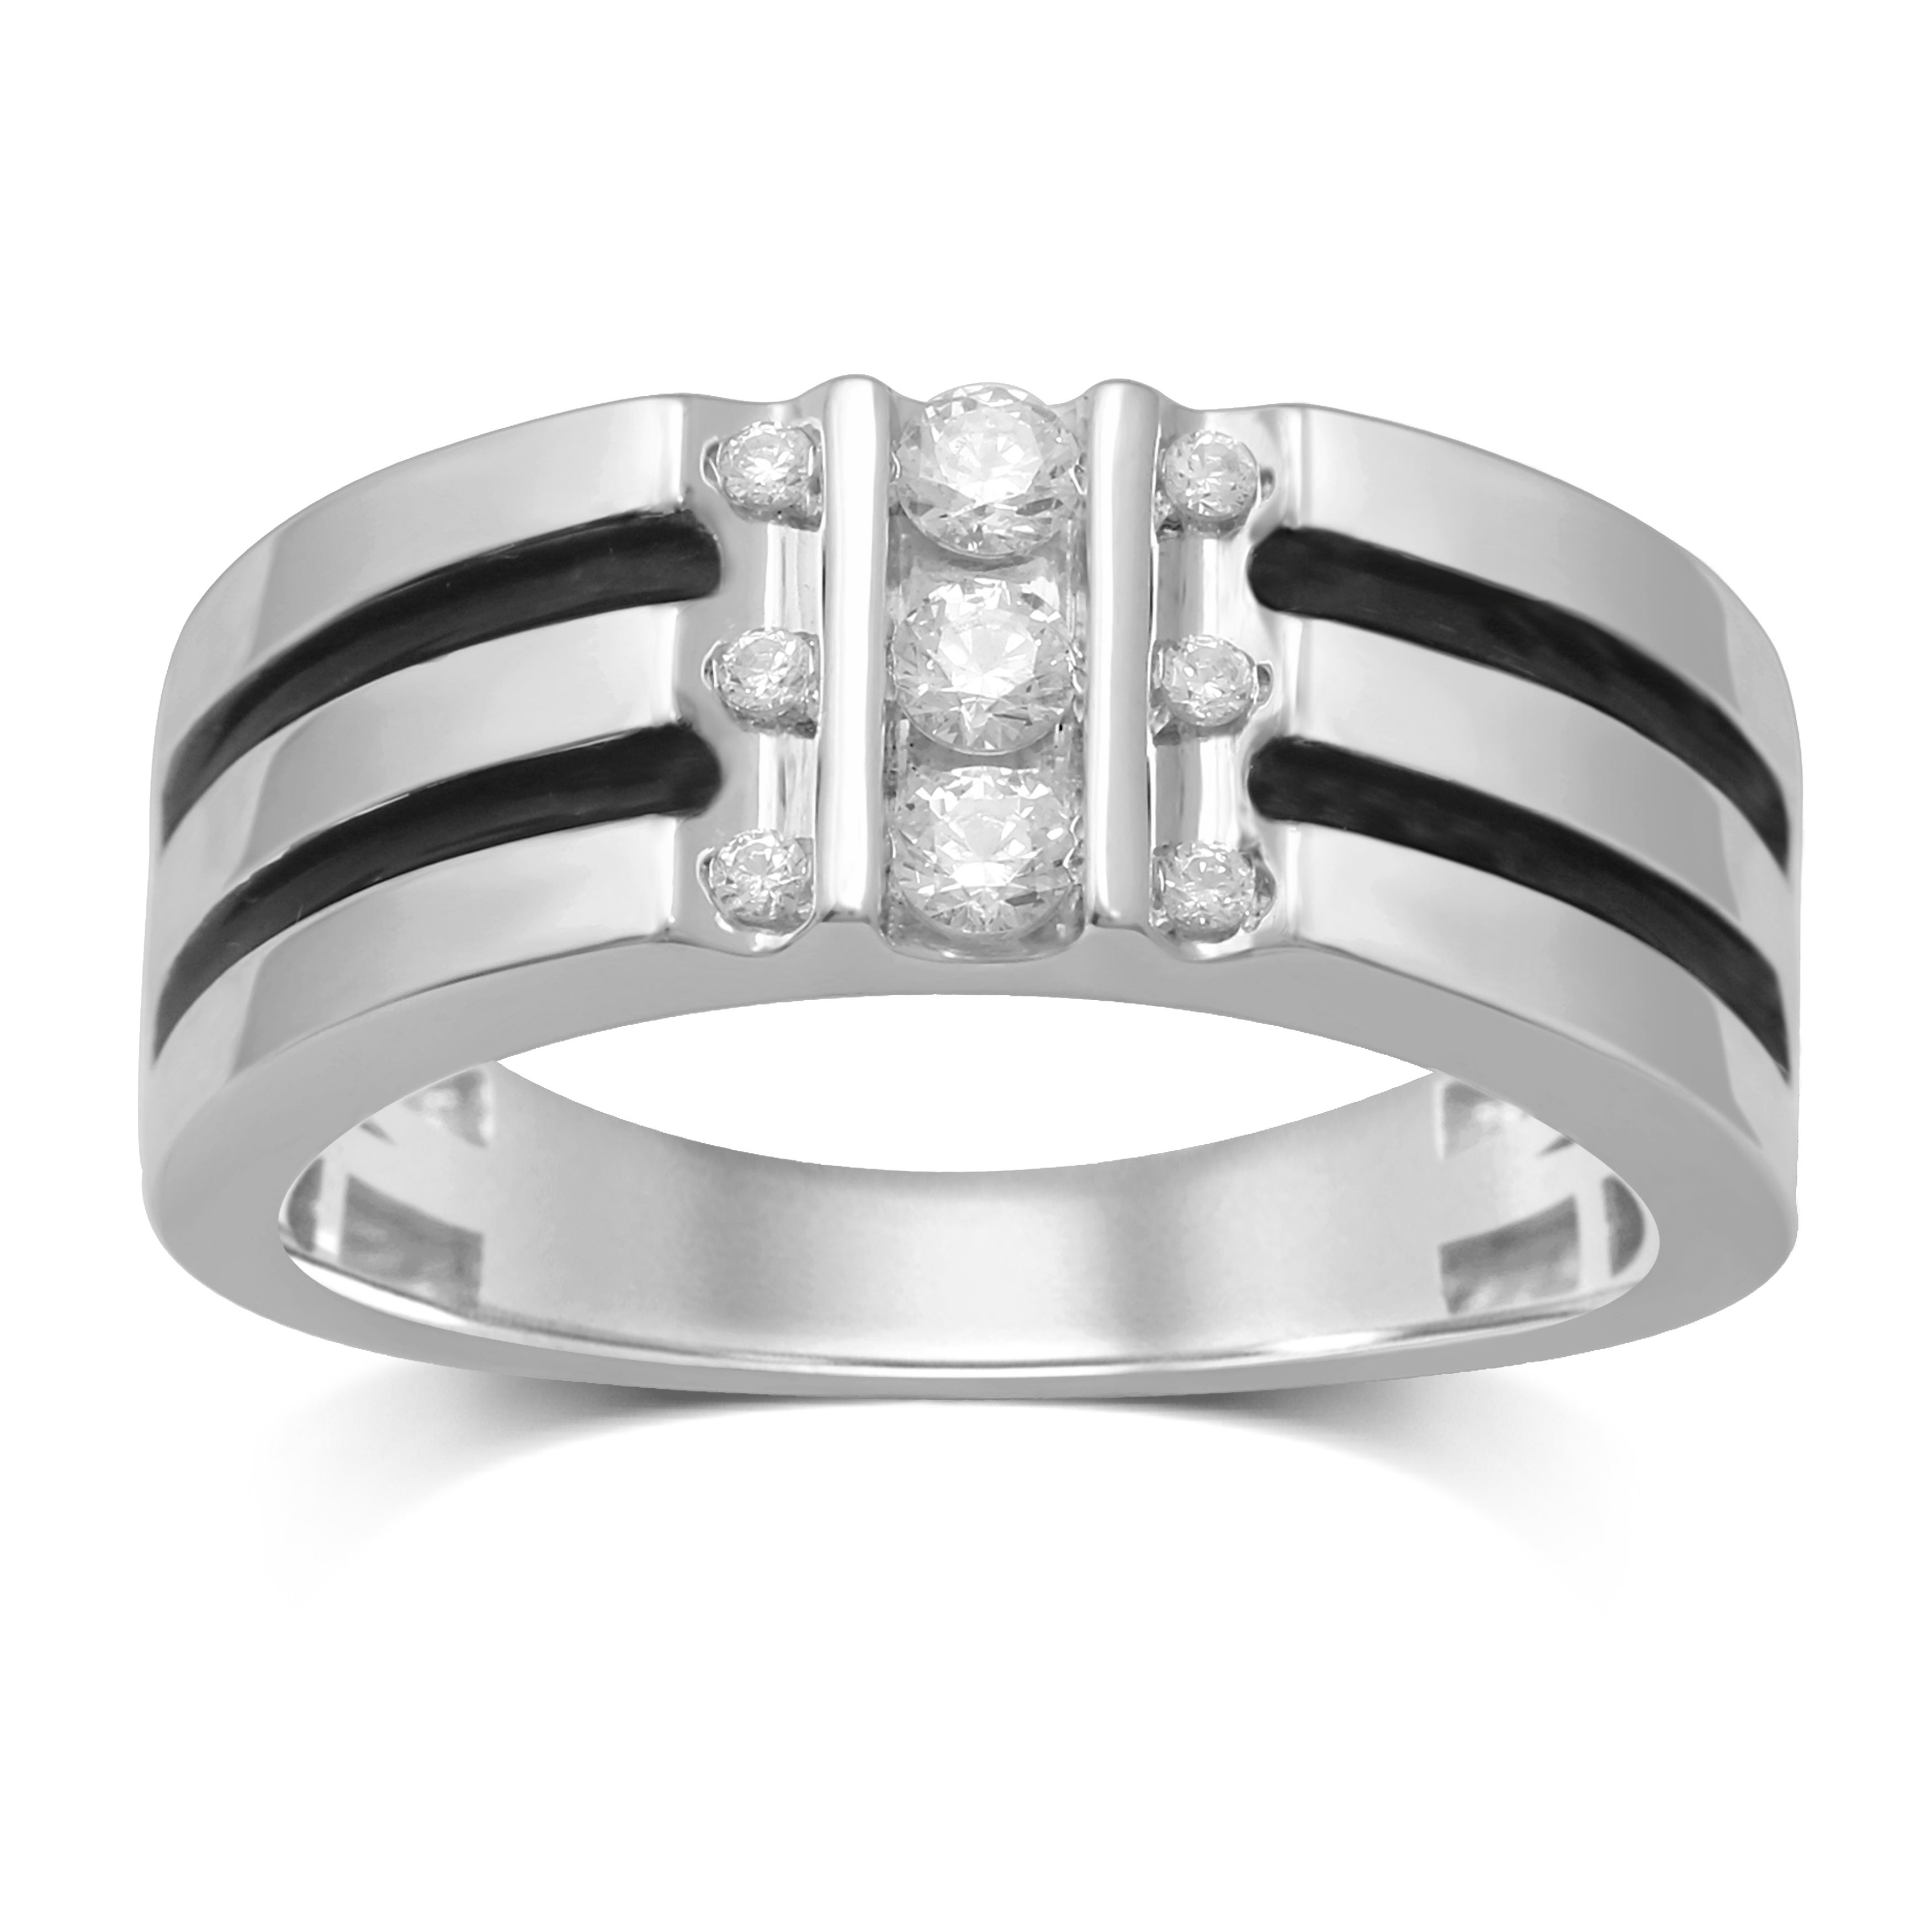 Details About Unending Love 10K White Gold Diamond Vertical Set Band Intended For 2017 Vertical Diamond Row Wedding Bands (View 8 of 25)